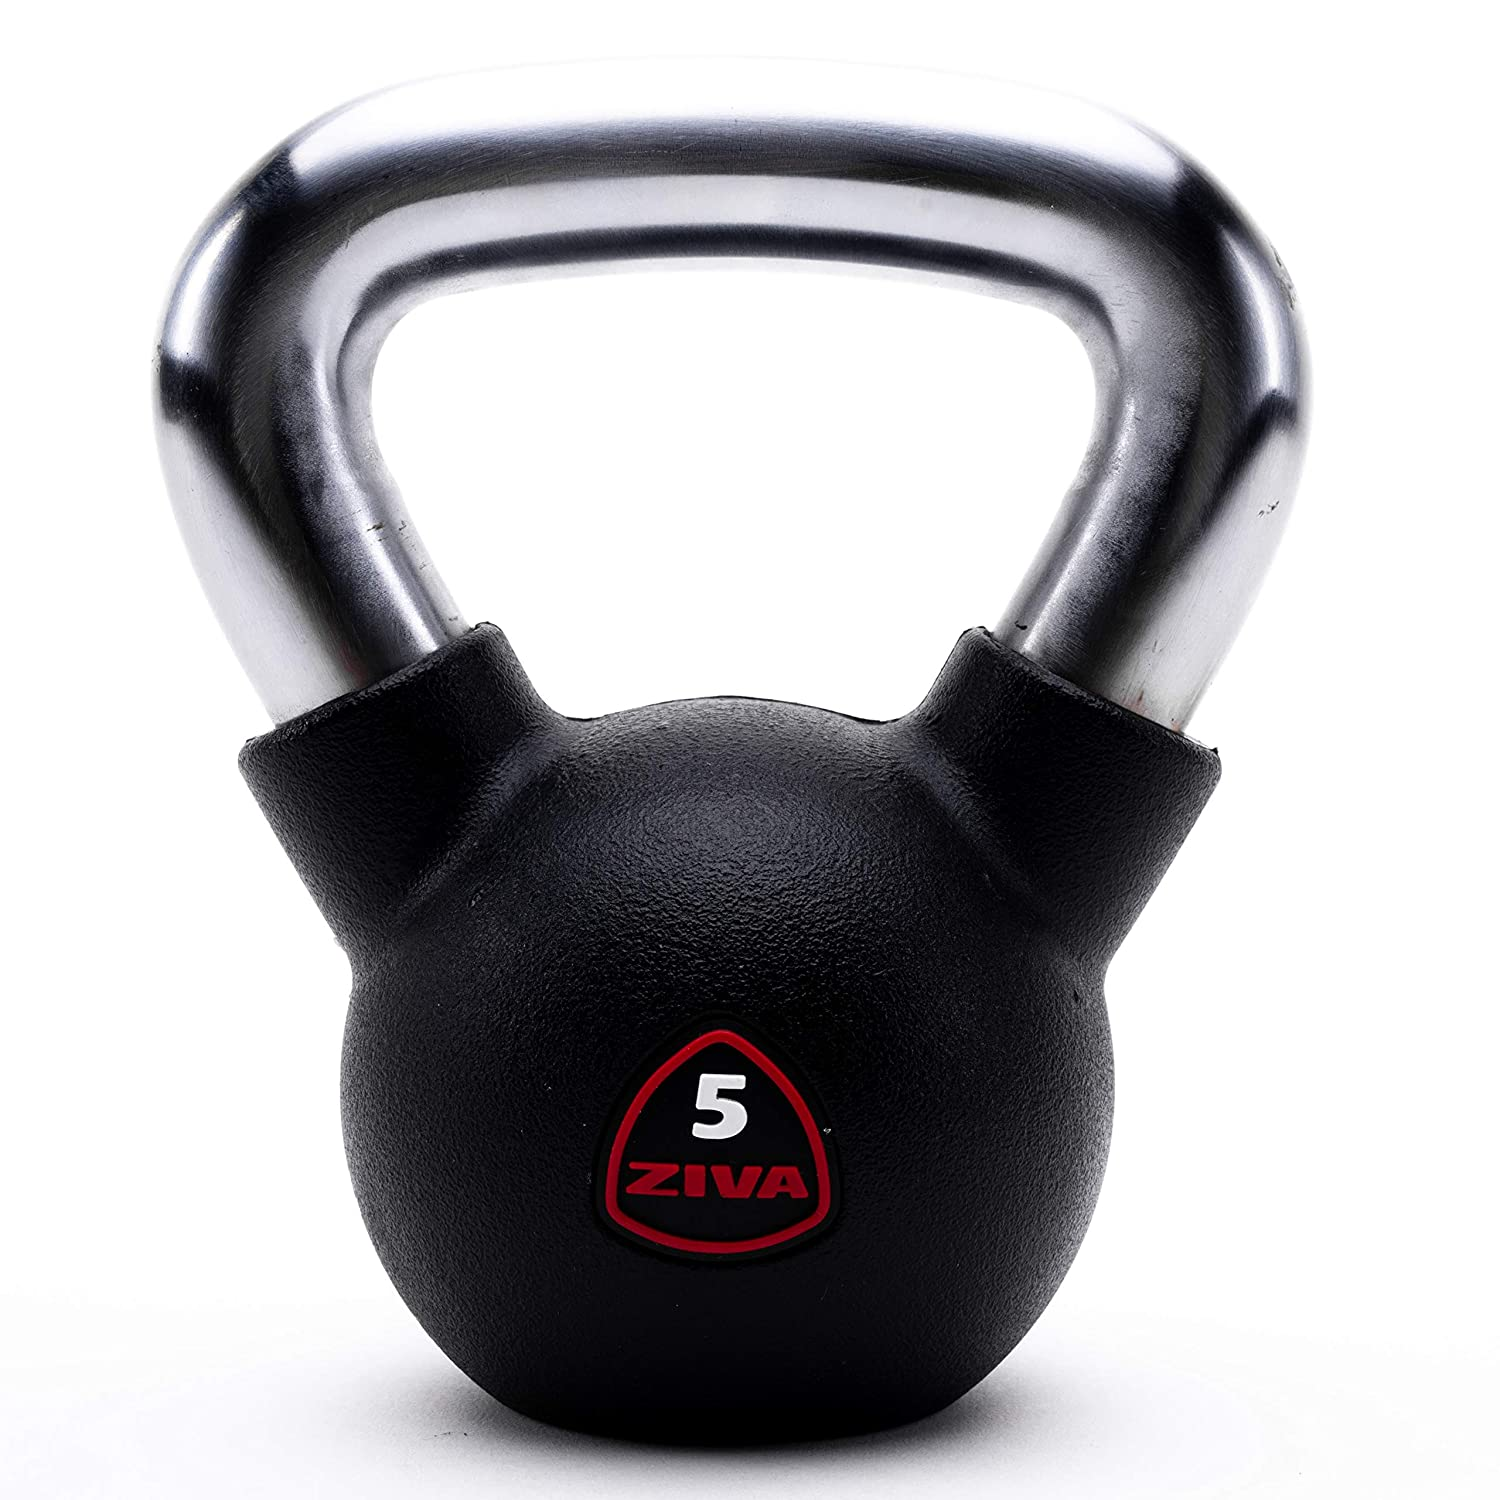 ZIVA Virgin Rubber Kettlebell Weights – Multiple Sizes, 5-50 Pounds – Free Weights for Core Training, Strength Training Workouts, Balance and Agility